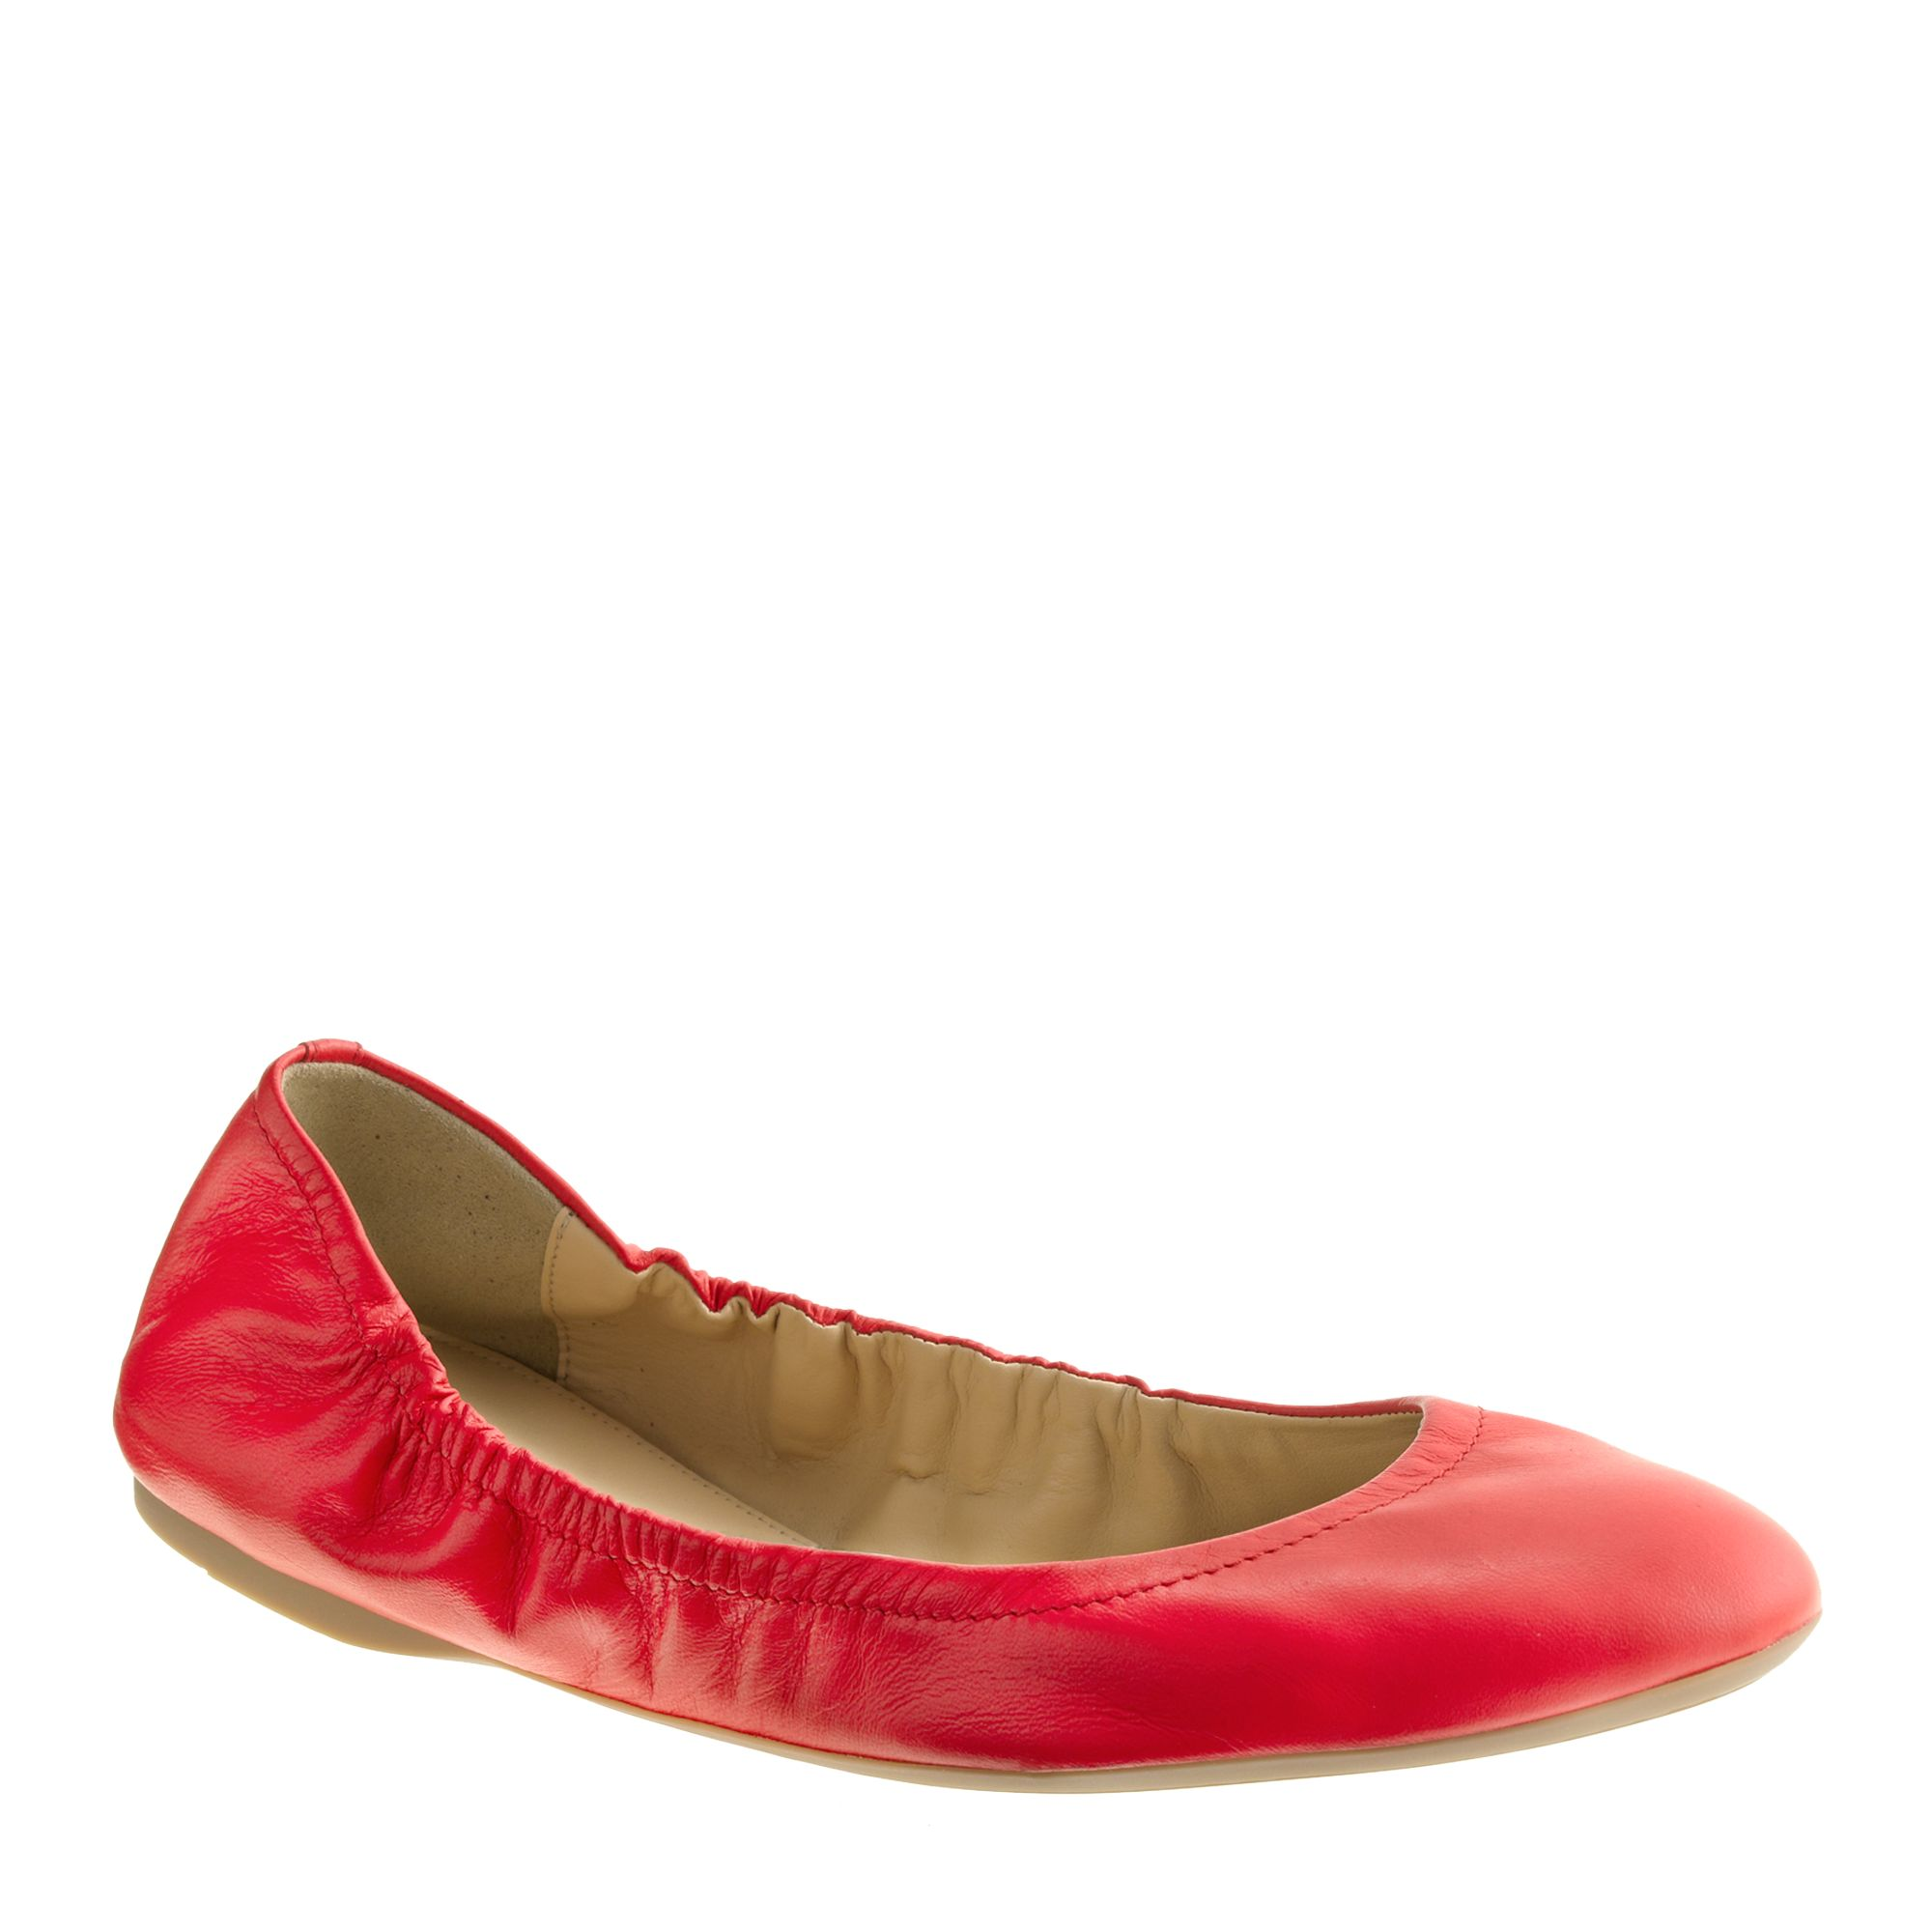 6 Best Shoes for Morton's Neuroma: Wiggle Room Not Optional. Sometimes people ask me if cold weather affects my rheumatoid arthritis. I do believe there's some truth to atmospheric pressure changes causing joint inflammation.